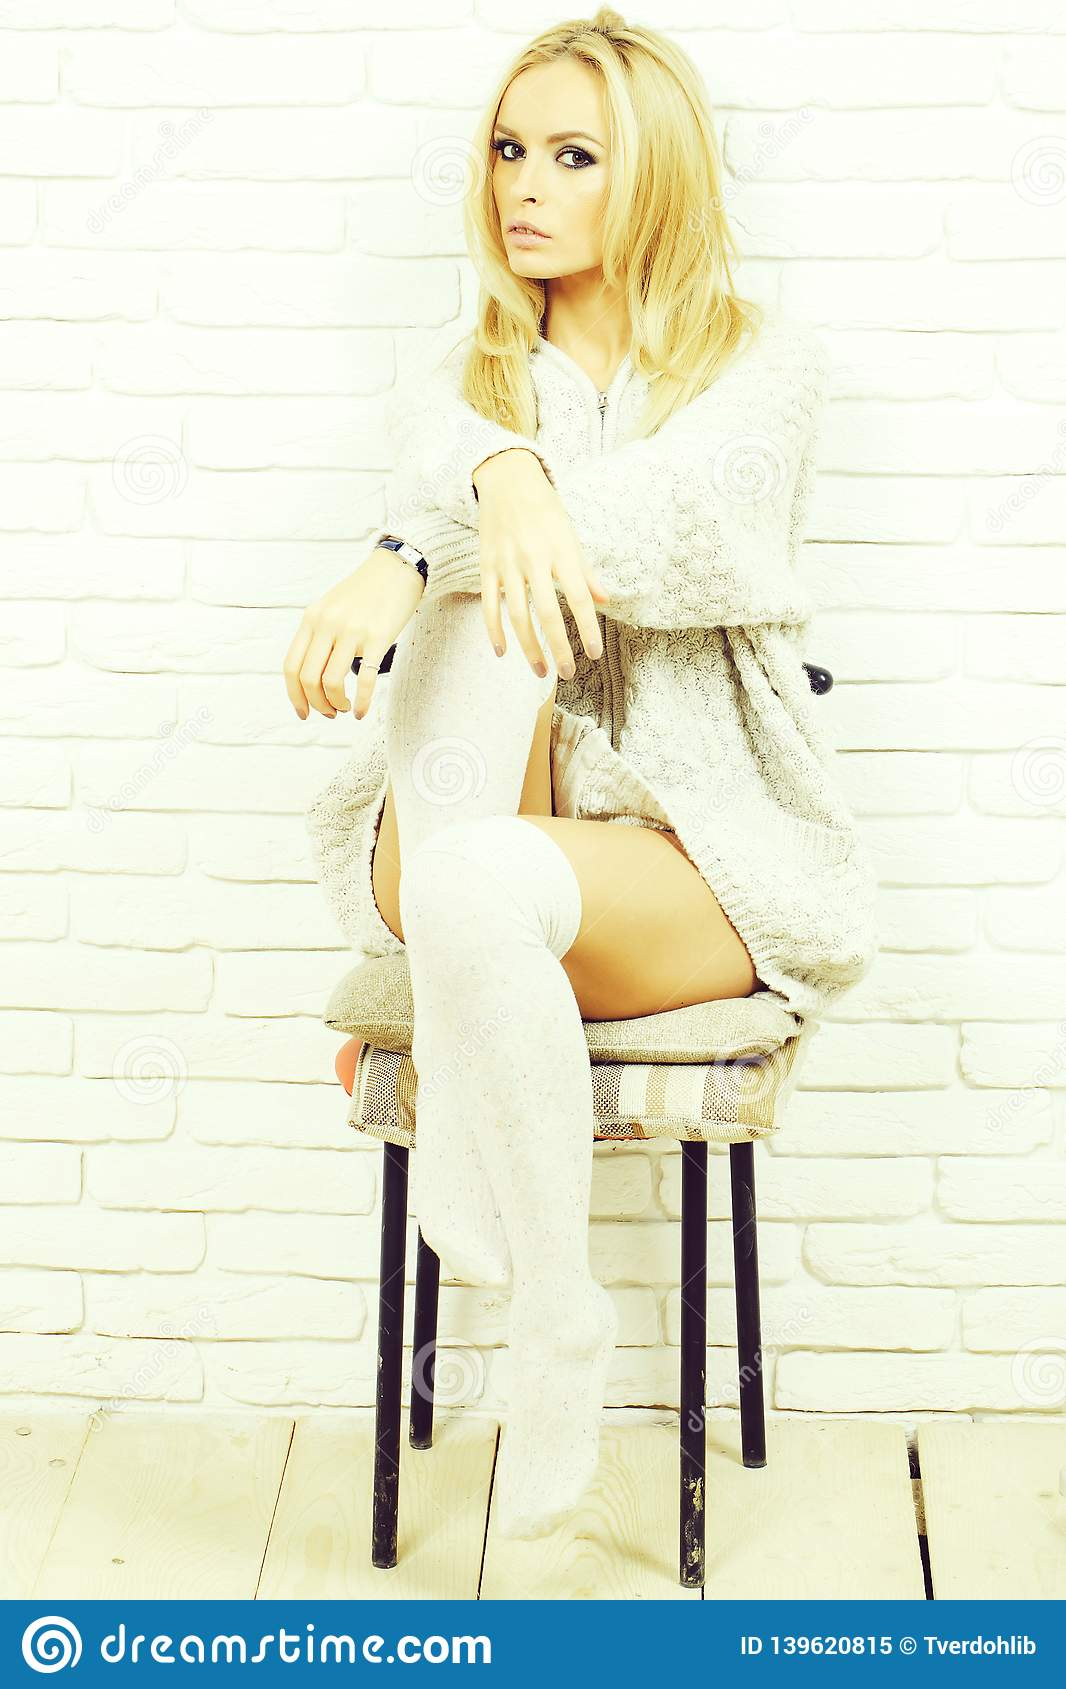 b8f82f54685f Pretty girl or beautiful cute woman fashion model with blond hair in  knitted sweater sits on chair on white brick wall